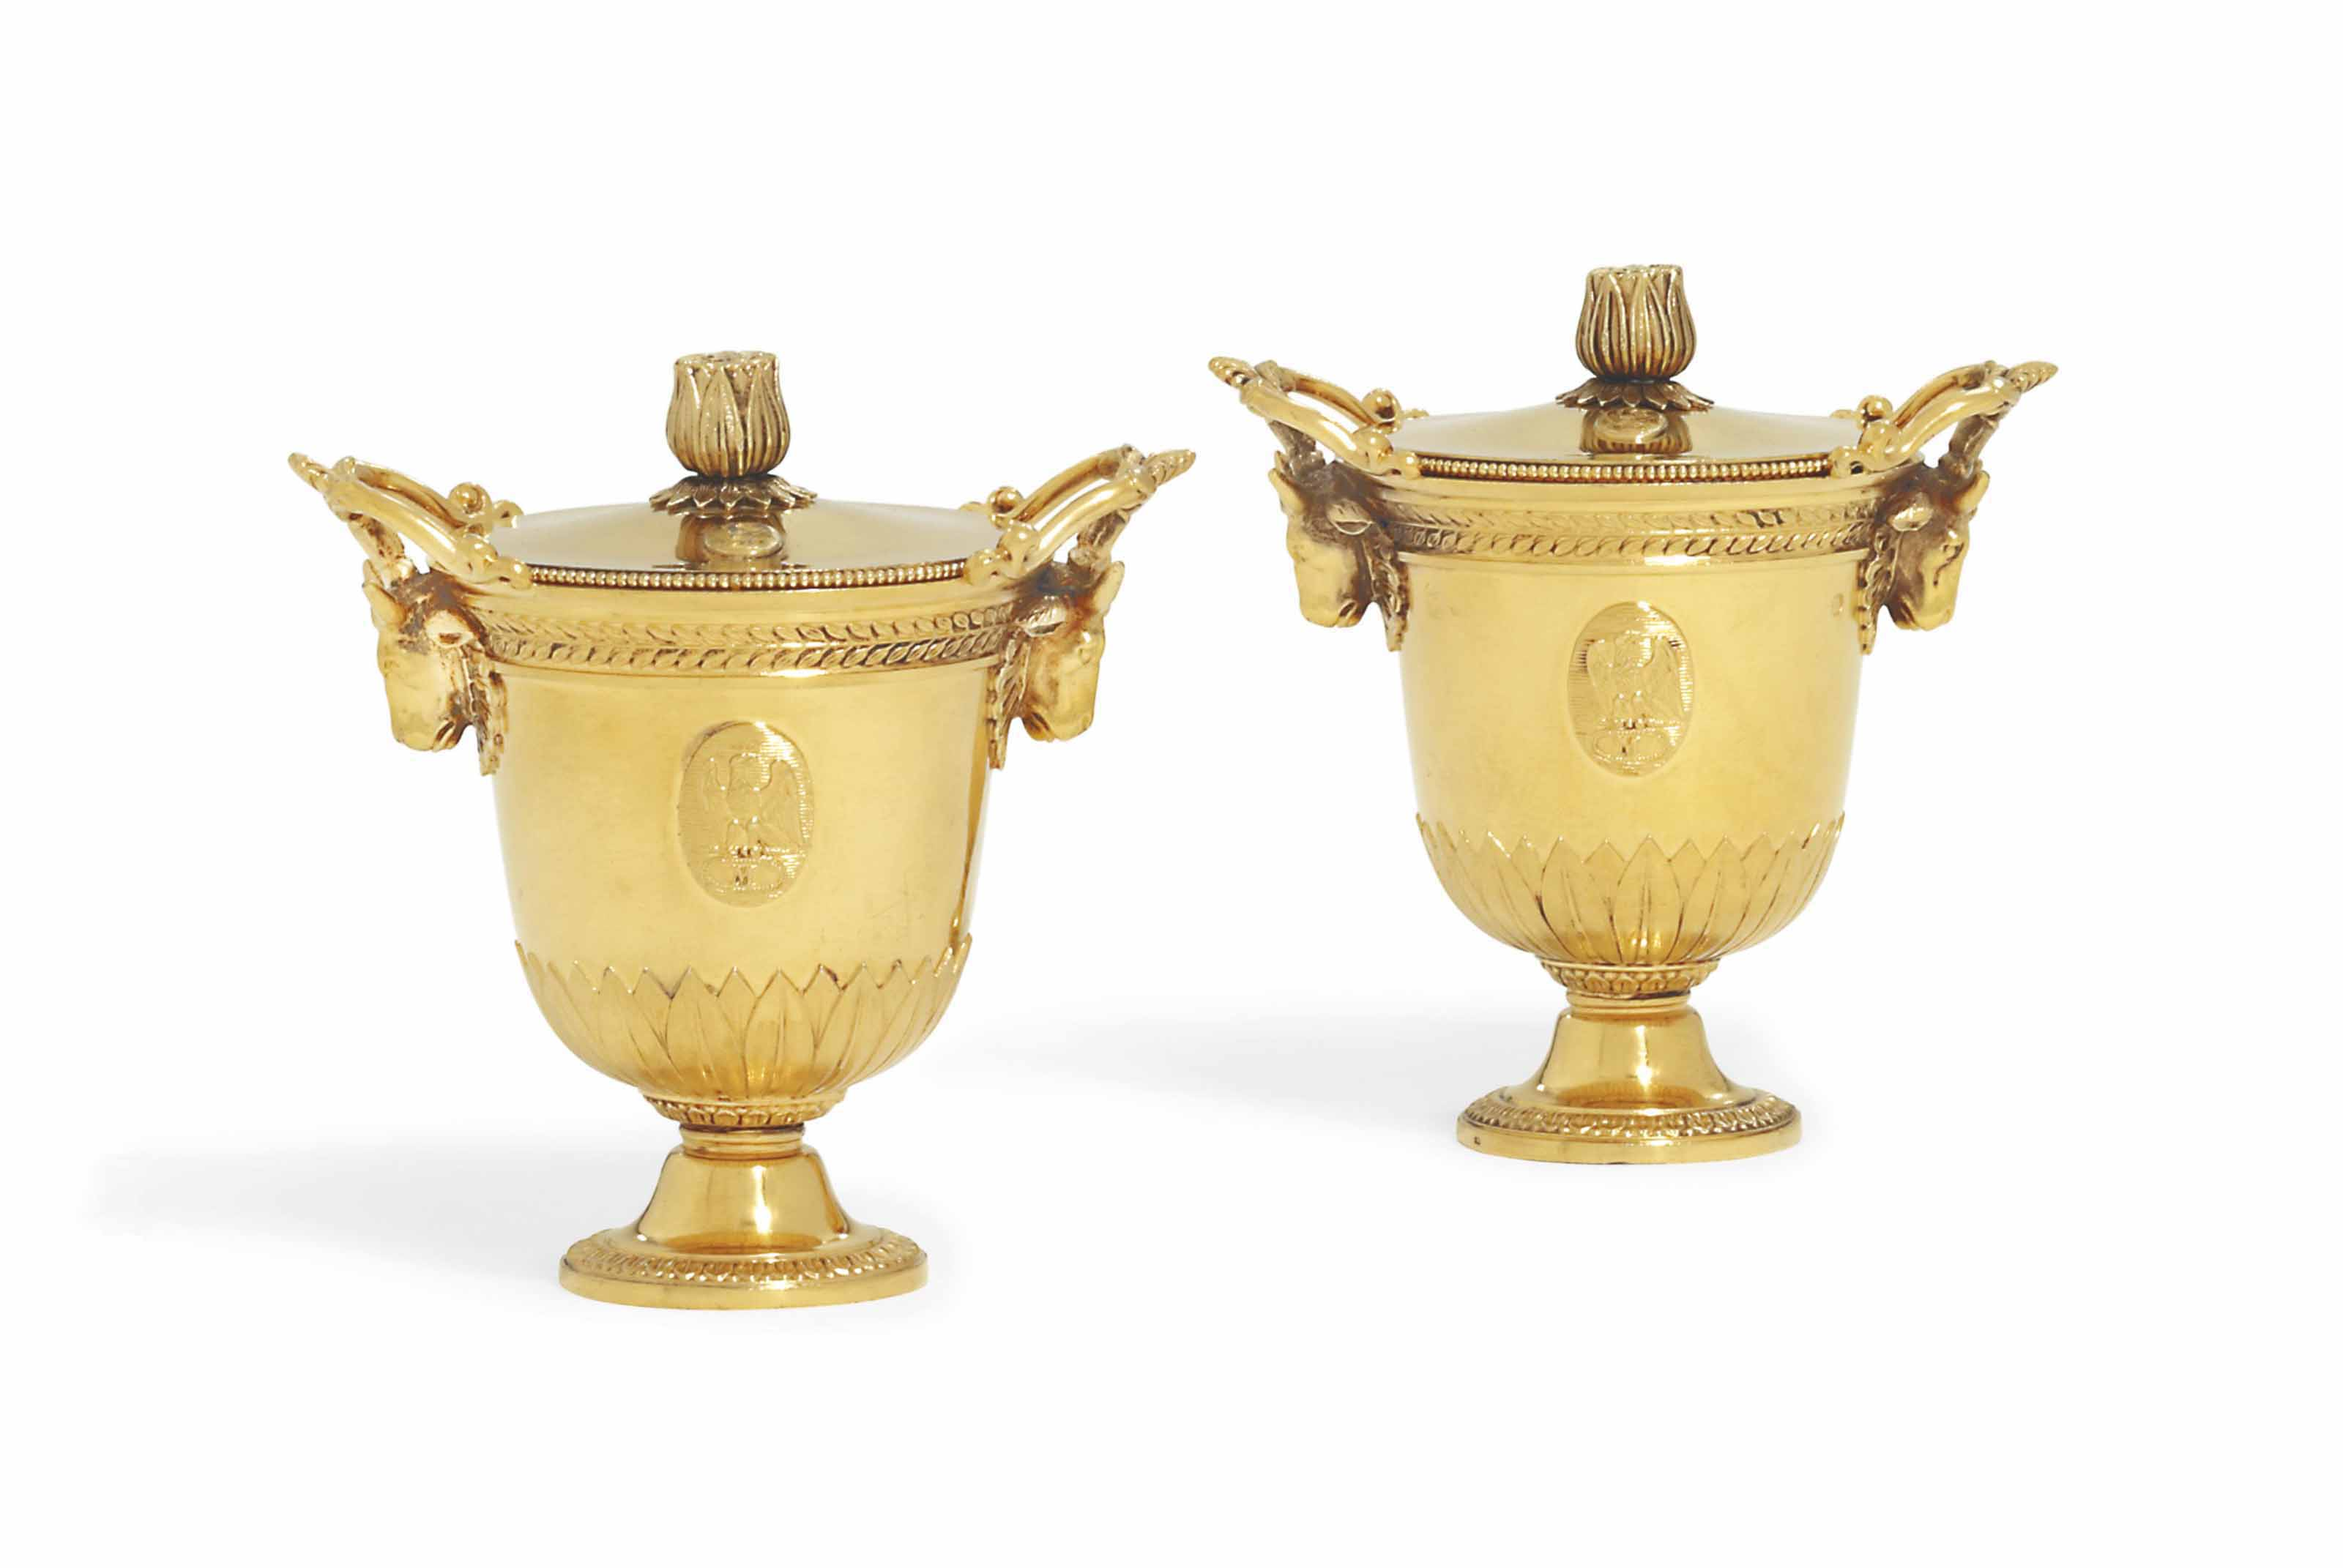 A PAIR OF FRENCH EMPIRE SILVER-GILT POT-A-CREME FROM THE MADAME MERE SERVICE